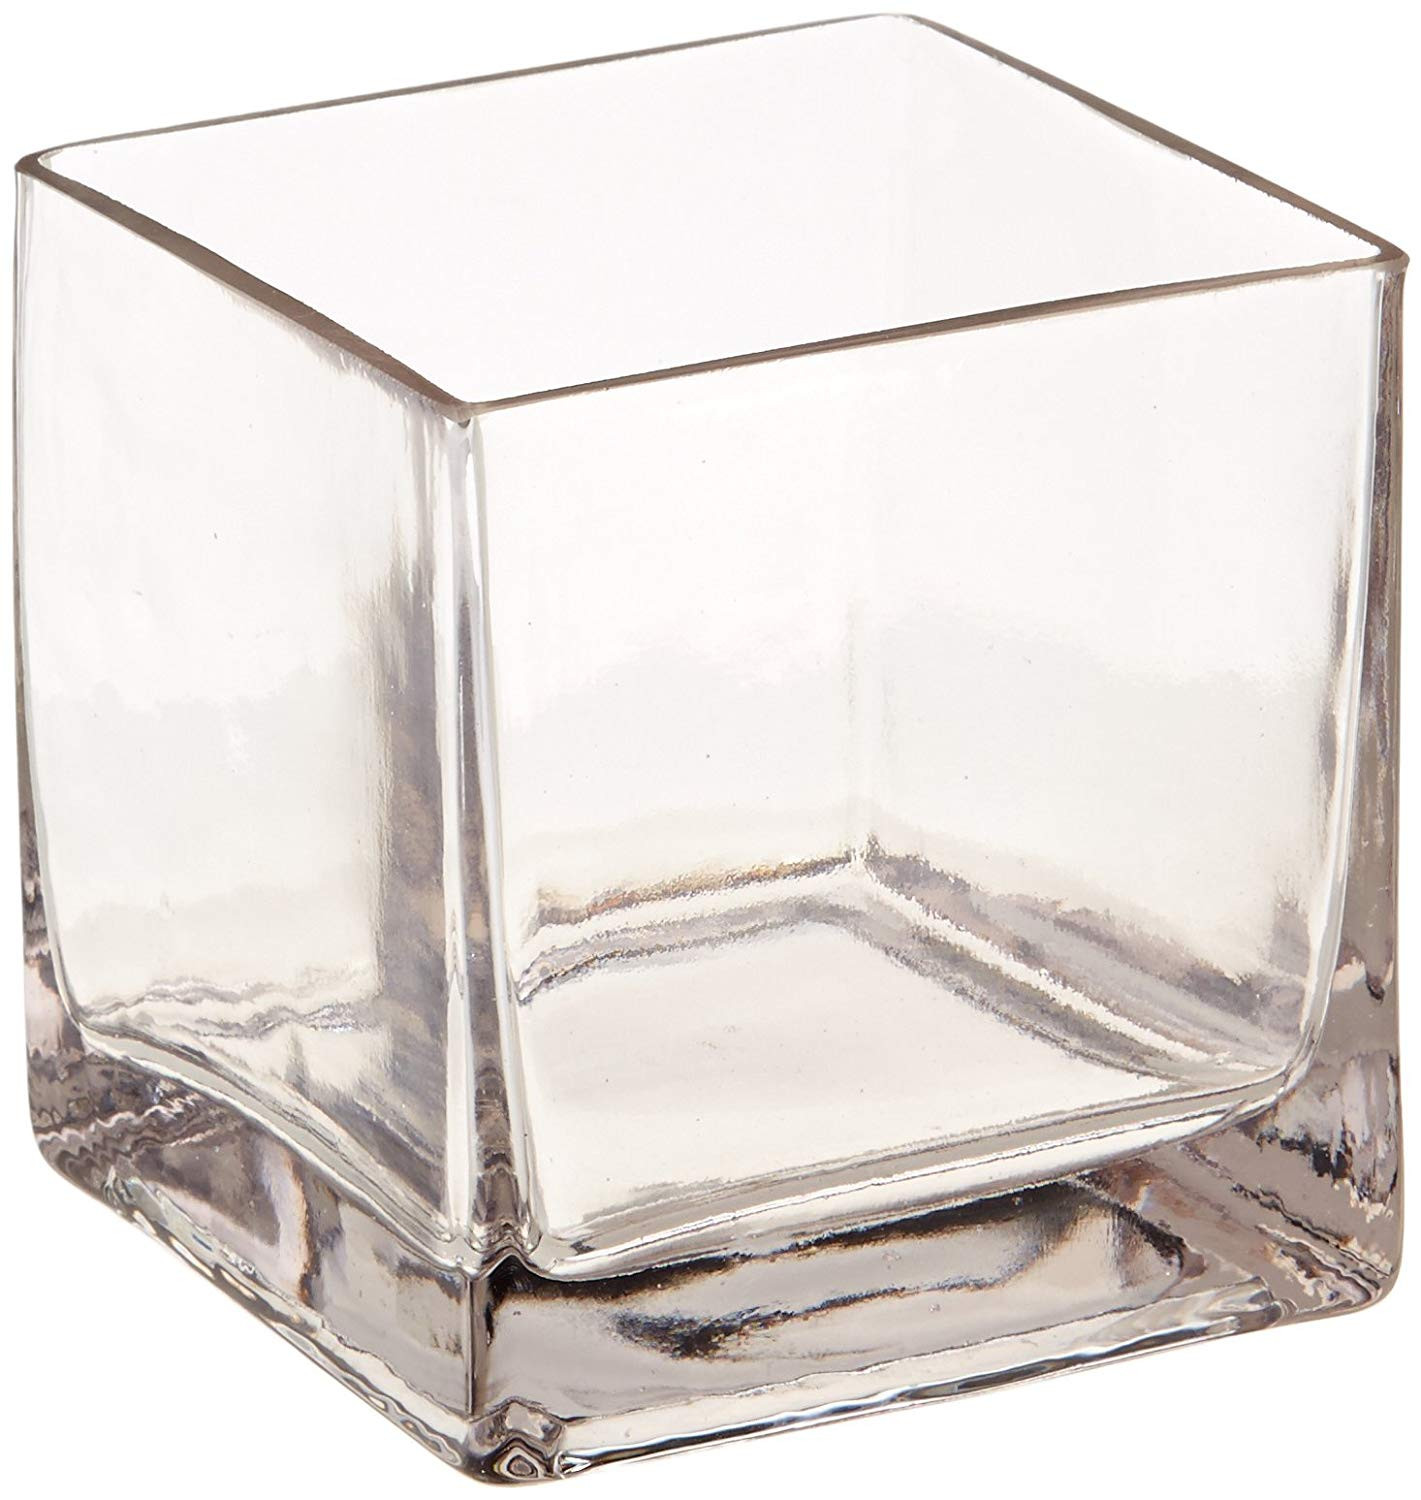 glass vase gems clear bulk of amazon com 12piece 4 square crystal clear glass vase home kitchen for 71 jezfmvnl sl1500